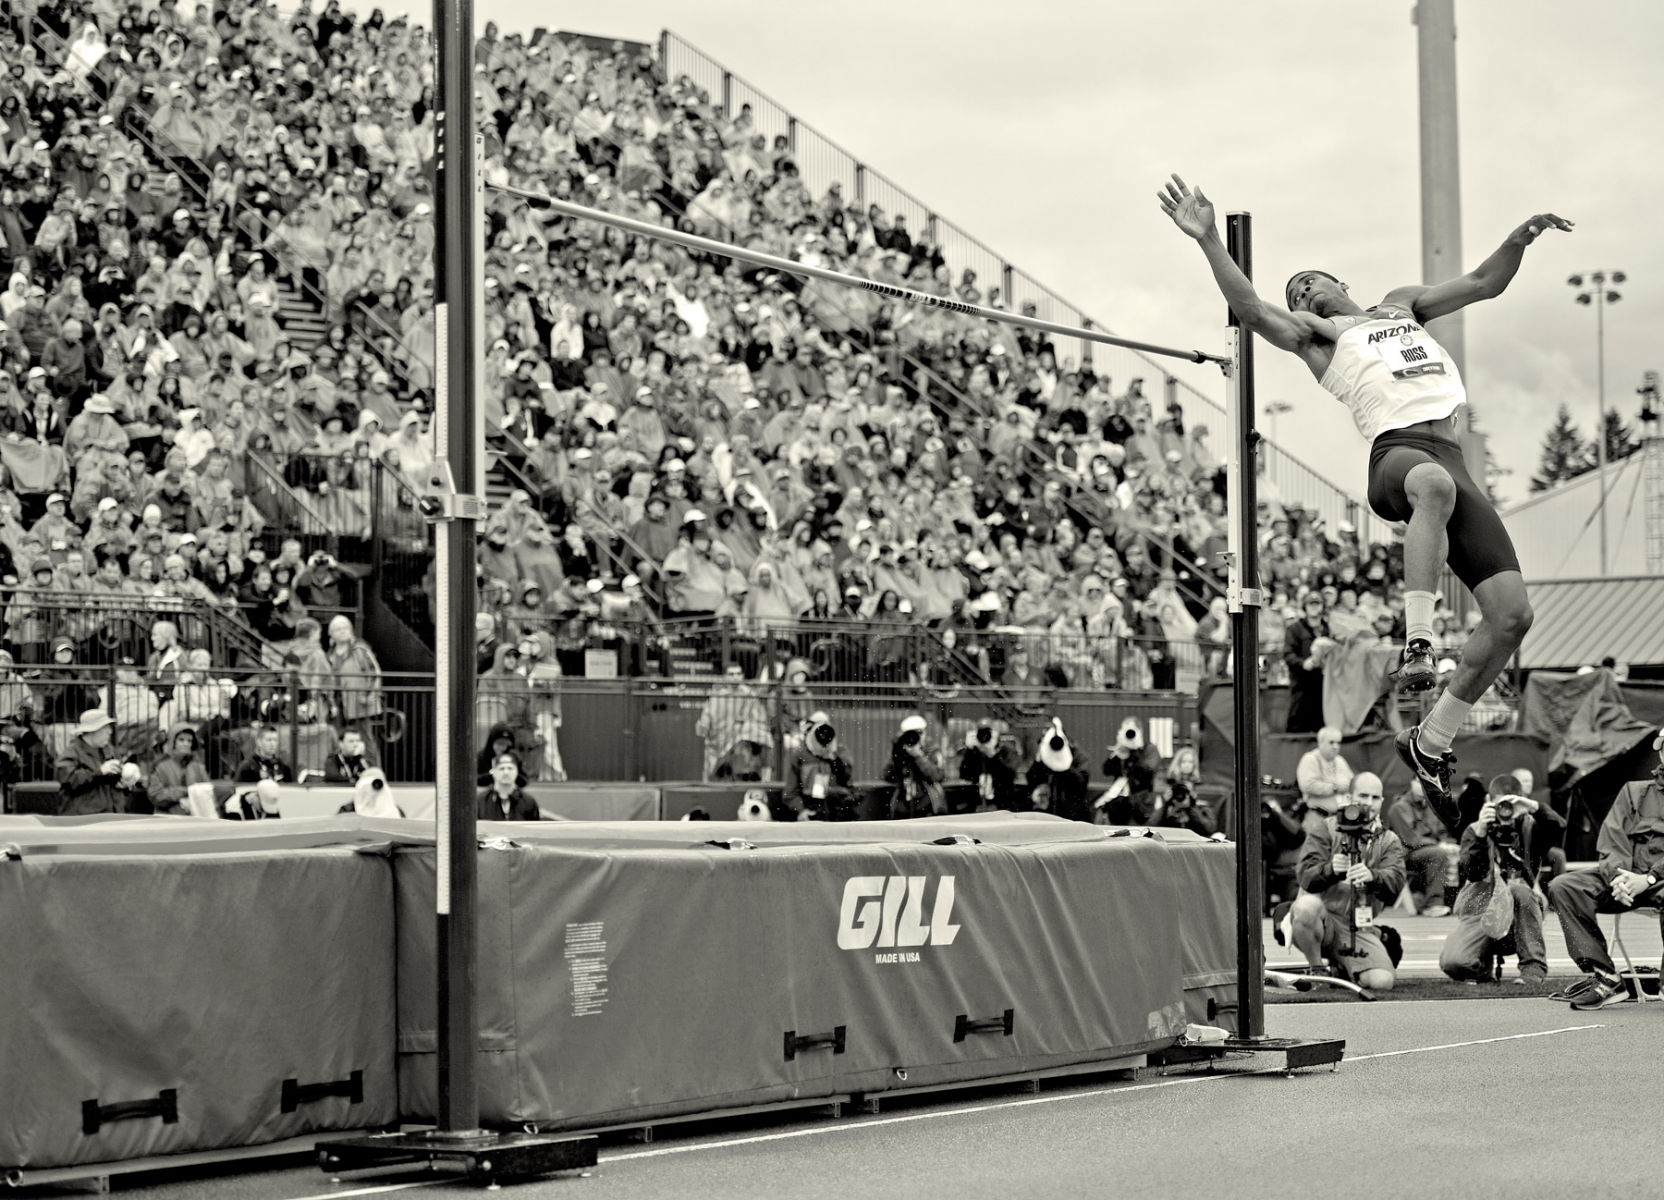 1ustrials_2012_ross_hjm_track_and_field_image_jeff_cohen_photo_lb.jpg